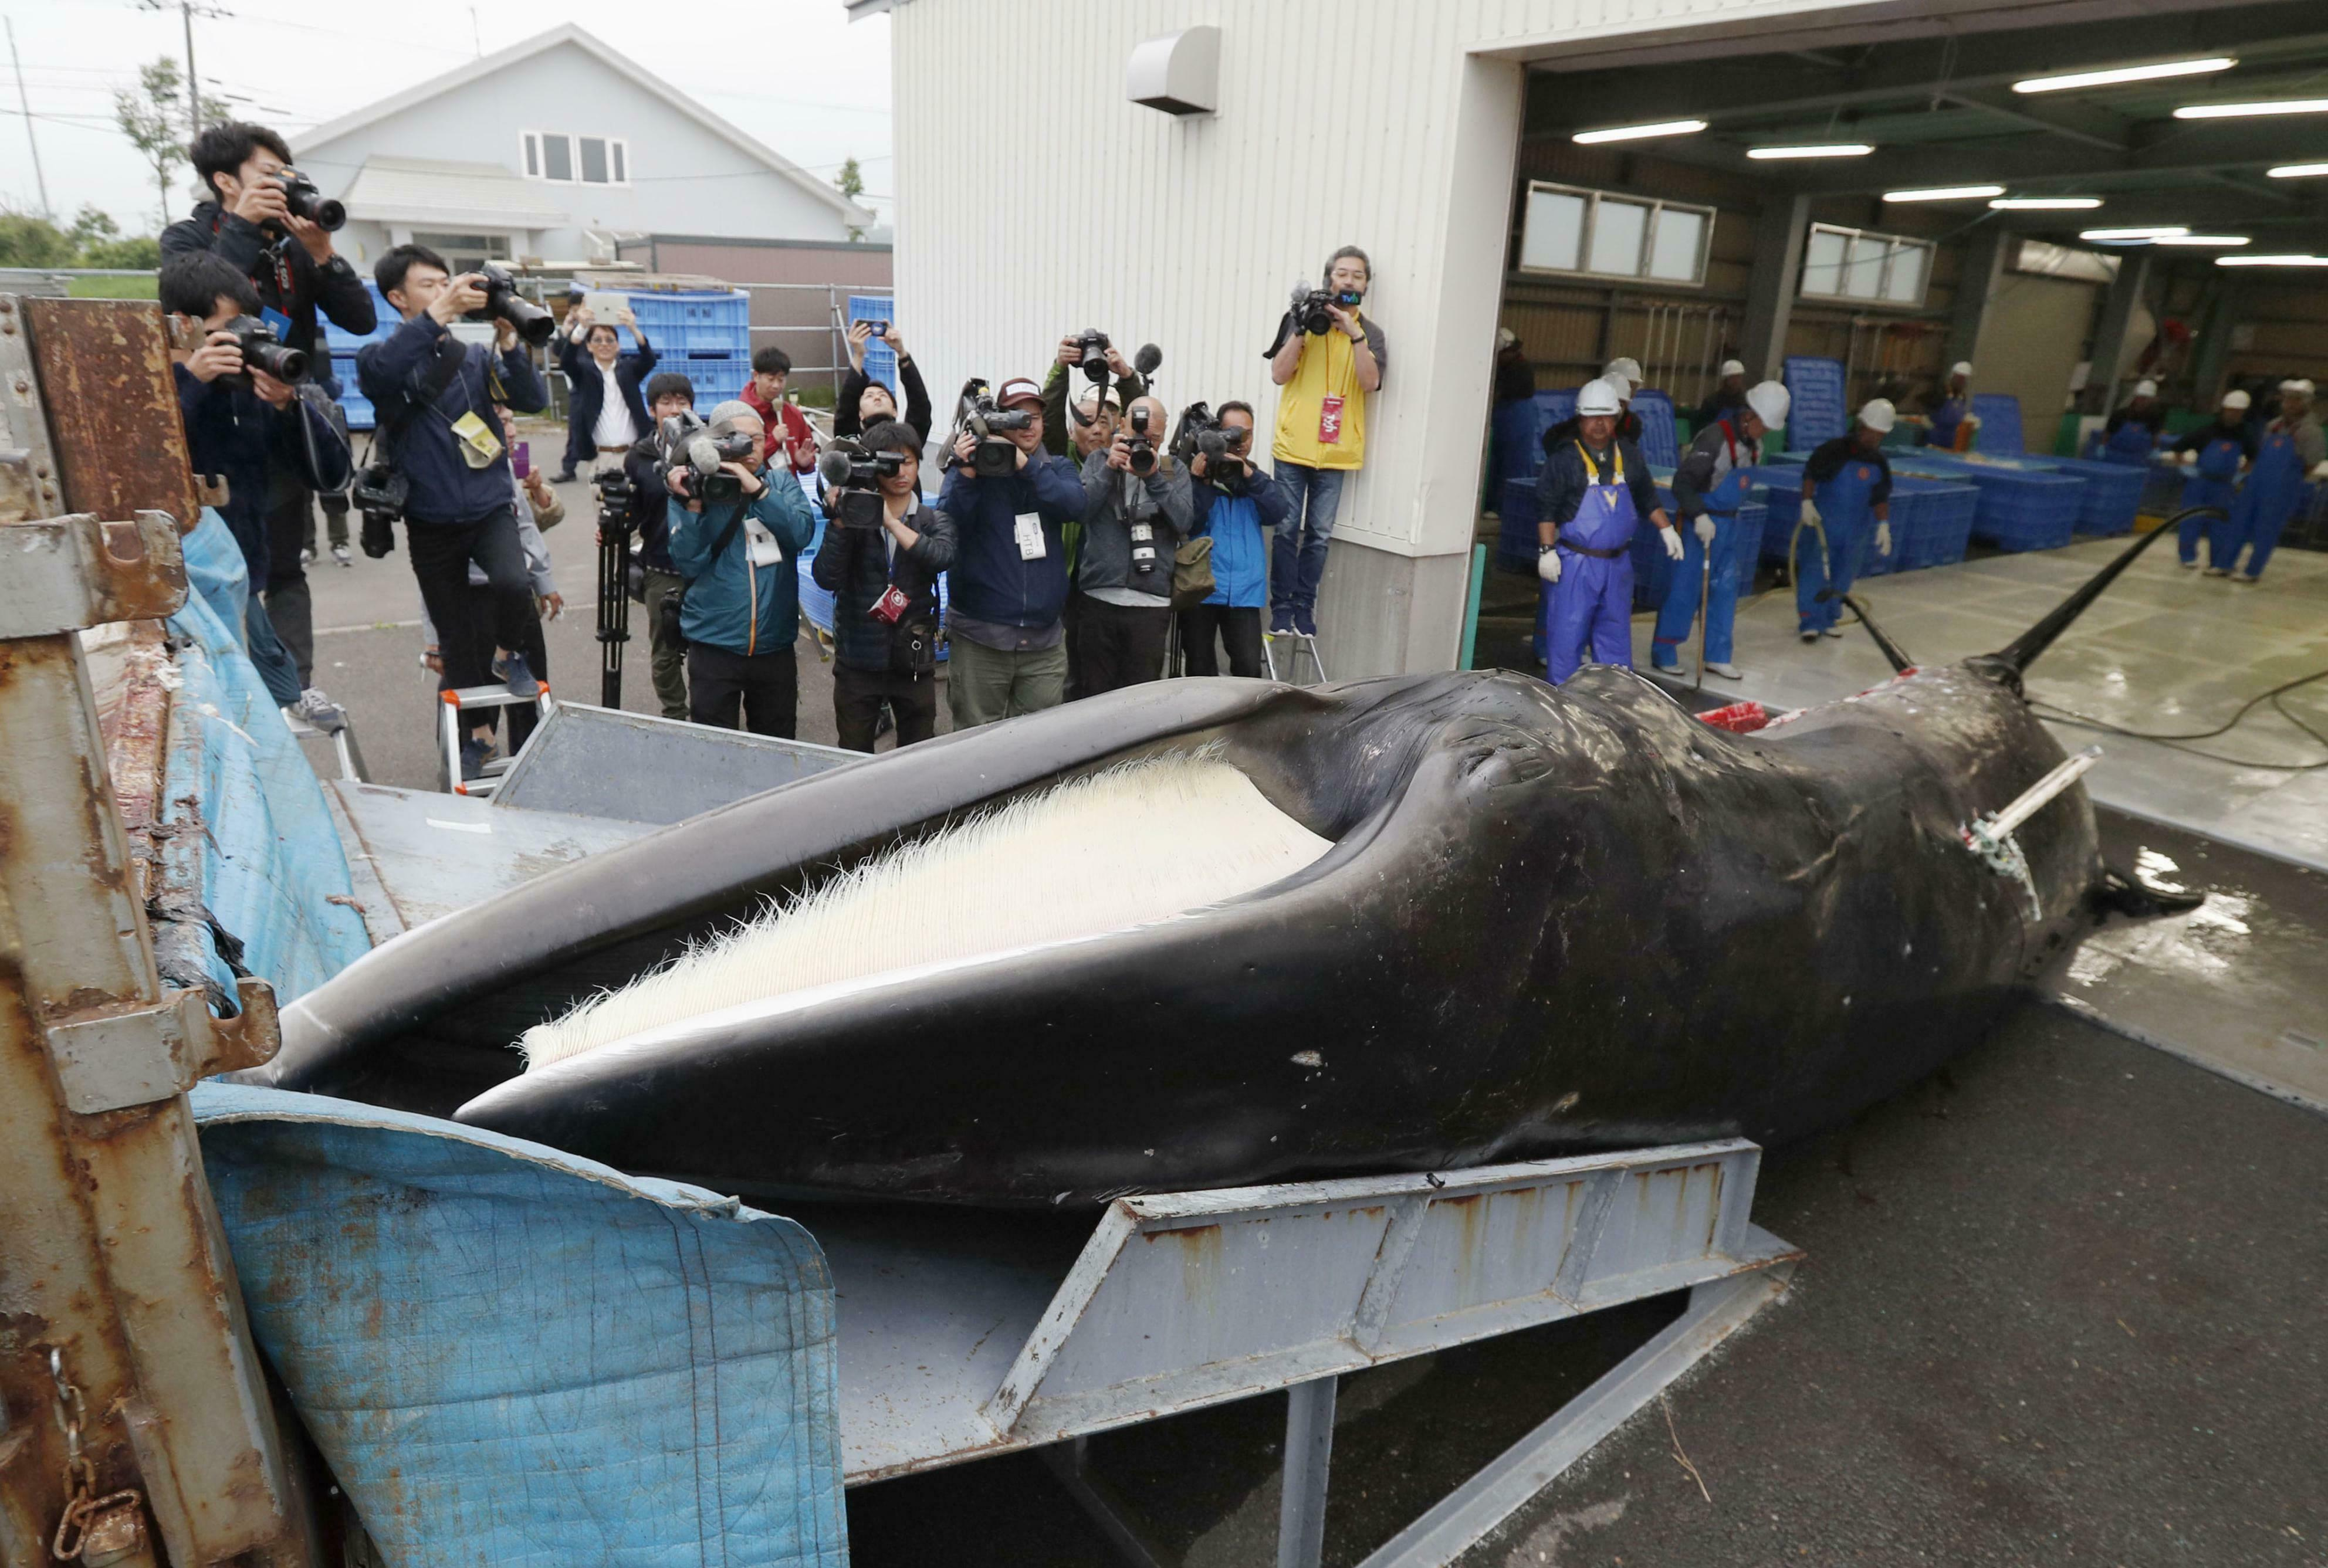 Japanese whalers and government officials hailed the resumption of the hunts, despite global criticism.